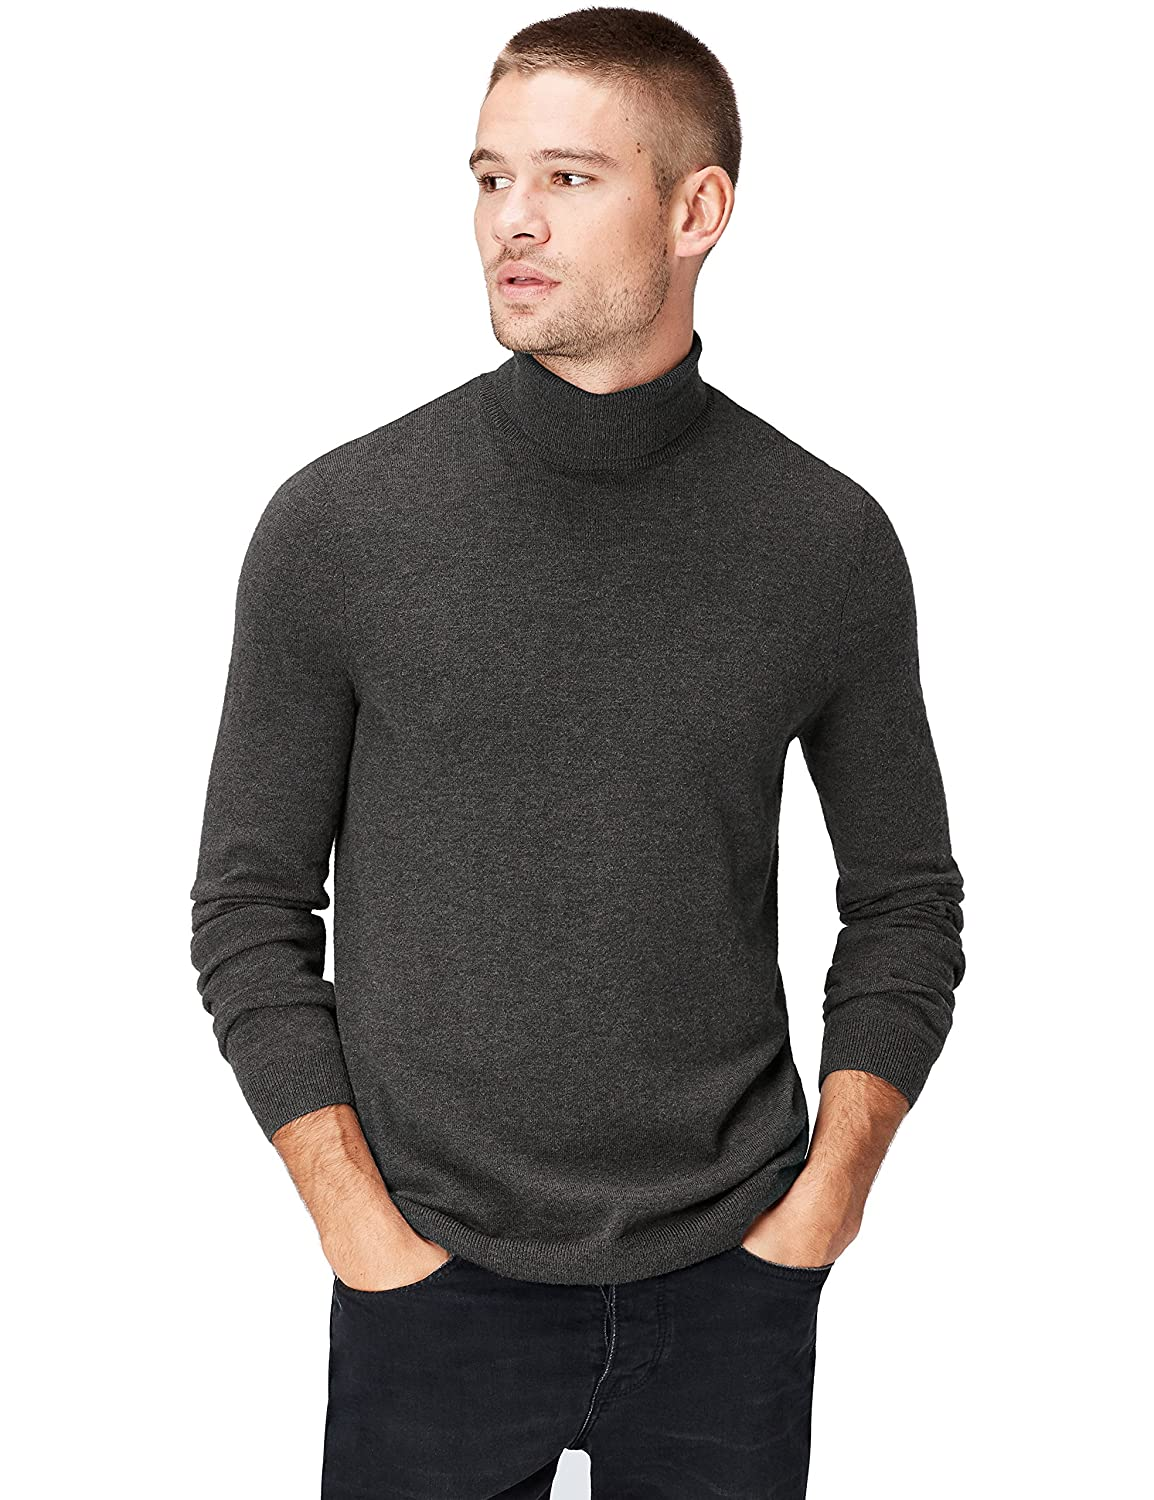 Marca Amazon: find. Roll Neck - Suéter Hombre